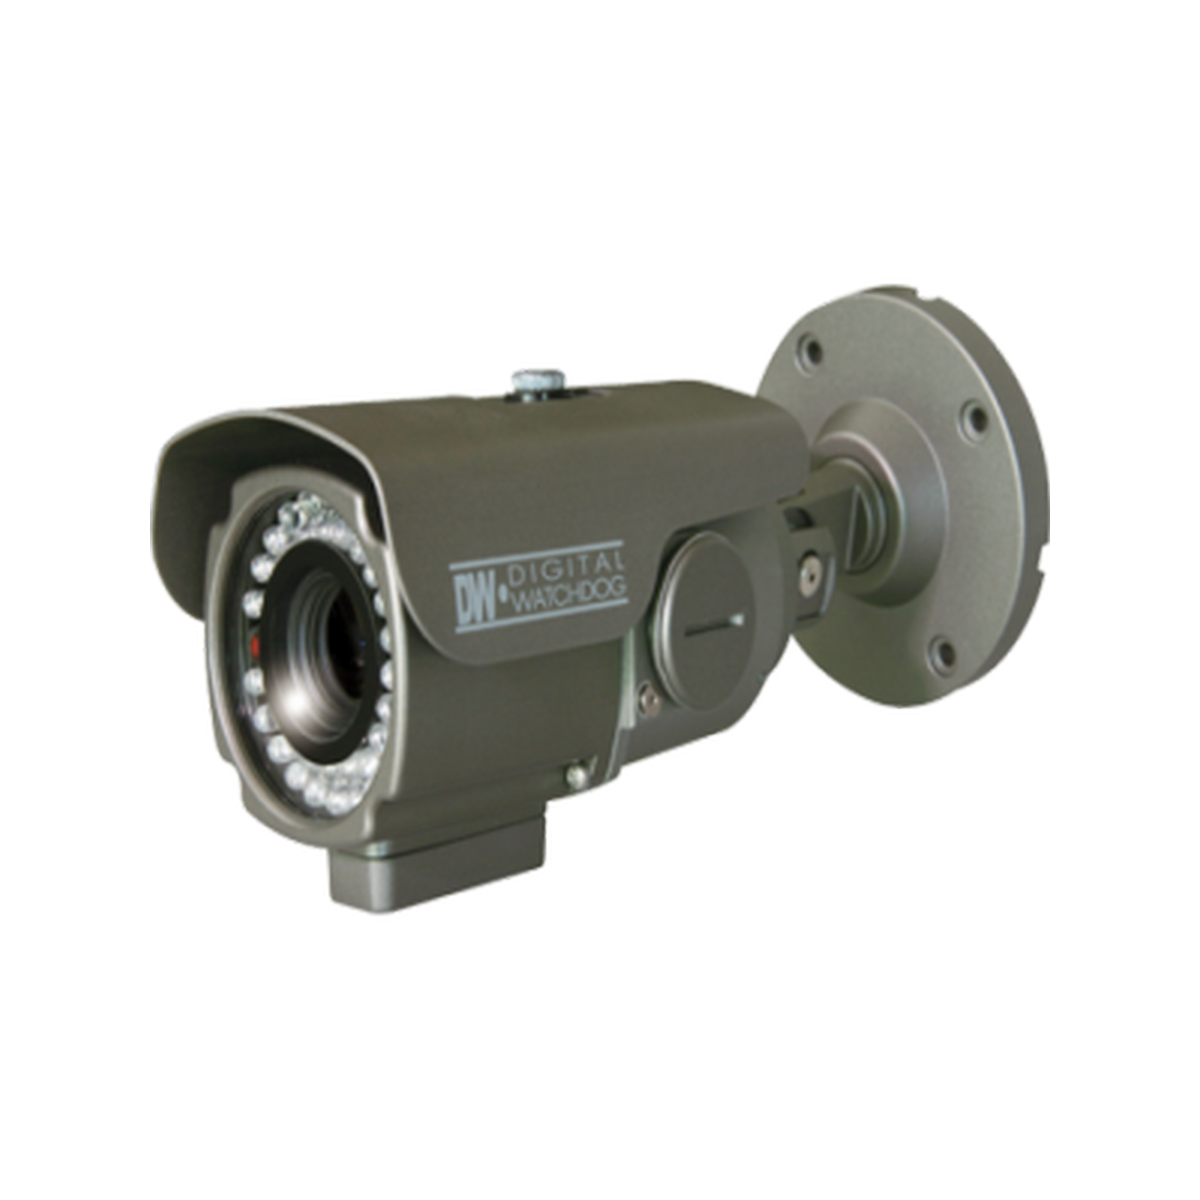 Digital Watchdog B1363TIR IR bullet camera, dual voltage, Starlight 3-12mm